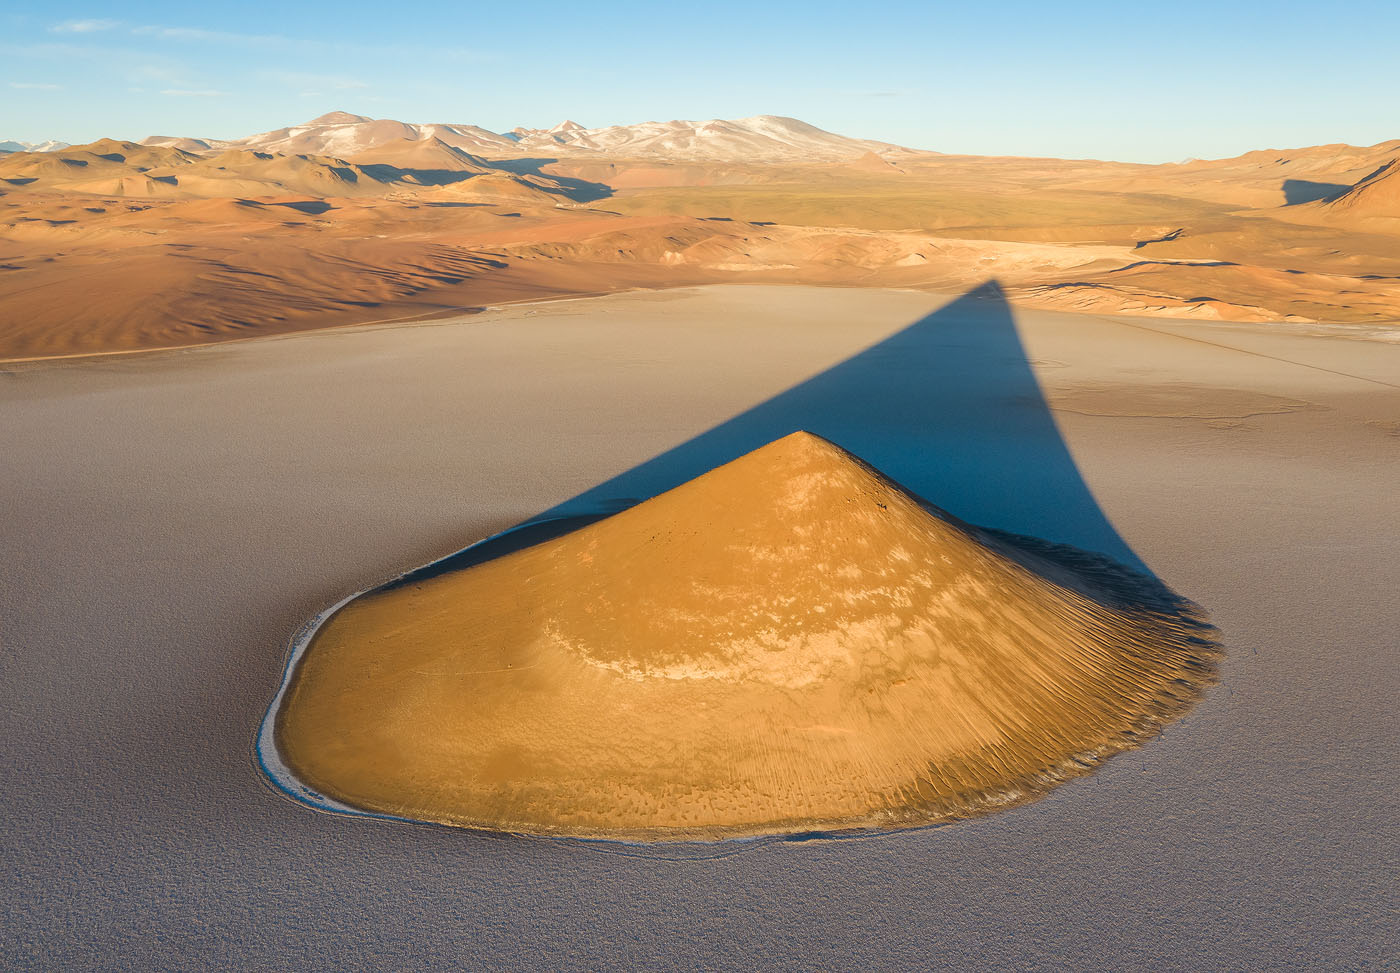 Cono Arita is a sandstone hill in the middle of the Arizaro salt flat in the Argentinean Puna (high-altitude desert). When morning light strikes, the beautiful shadow is cast upon the plain. Taking the drone up allowed me to show this, while creating separation between the cone, its shadow and the surrounding hills and mountains.